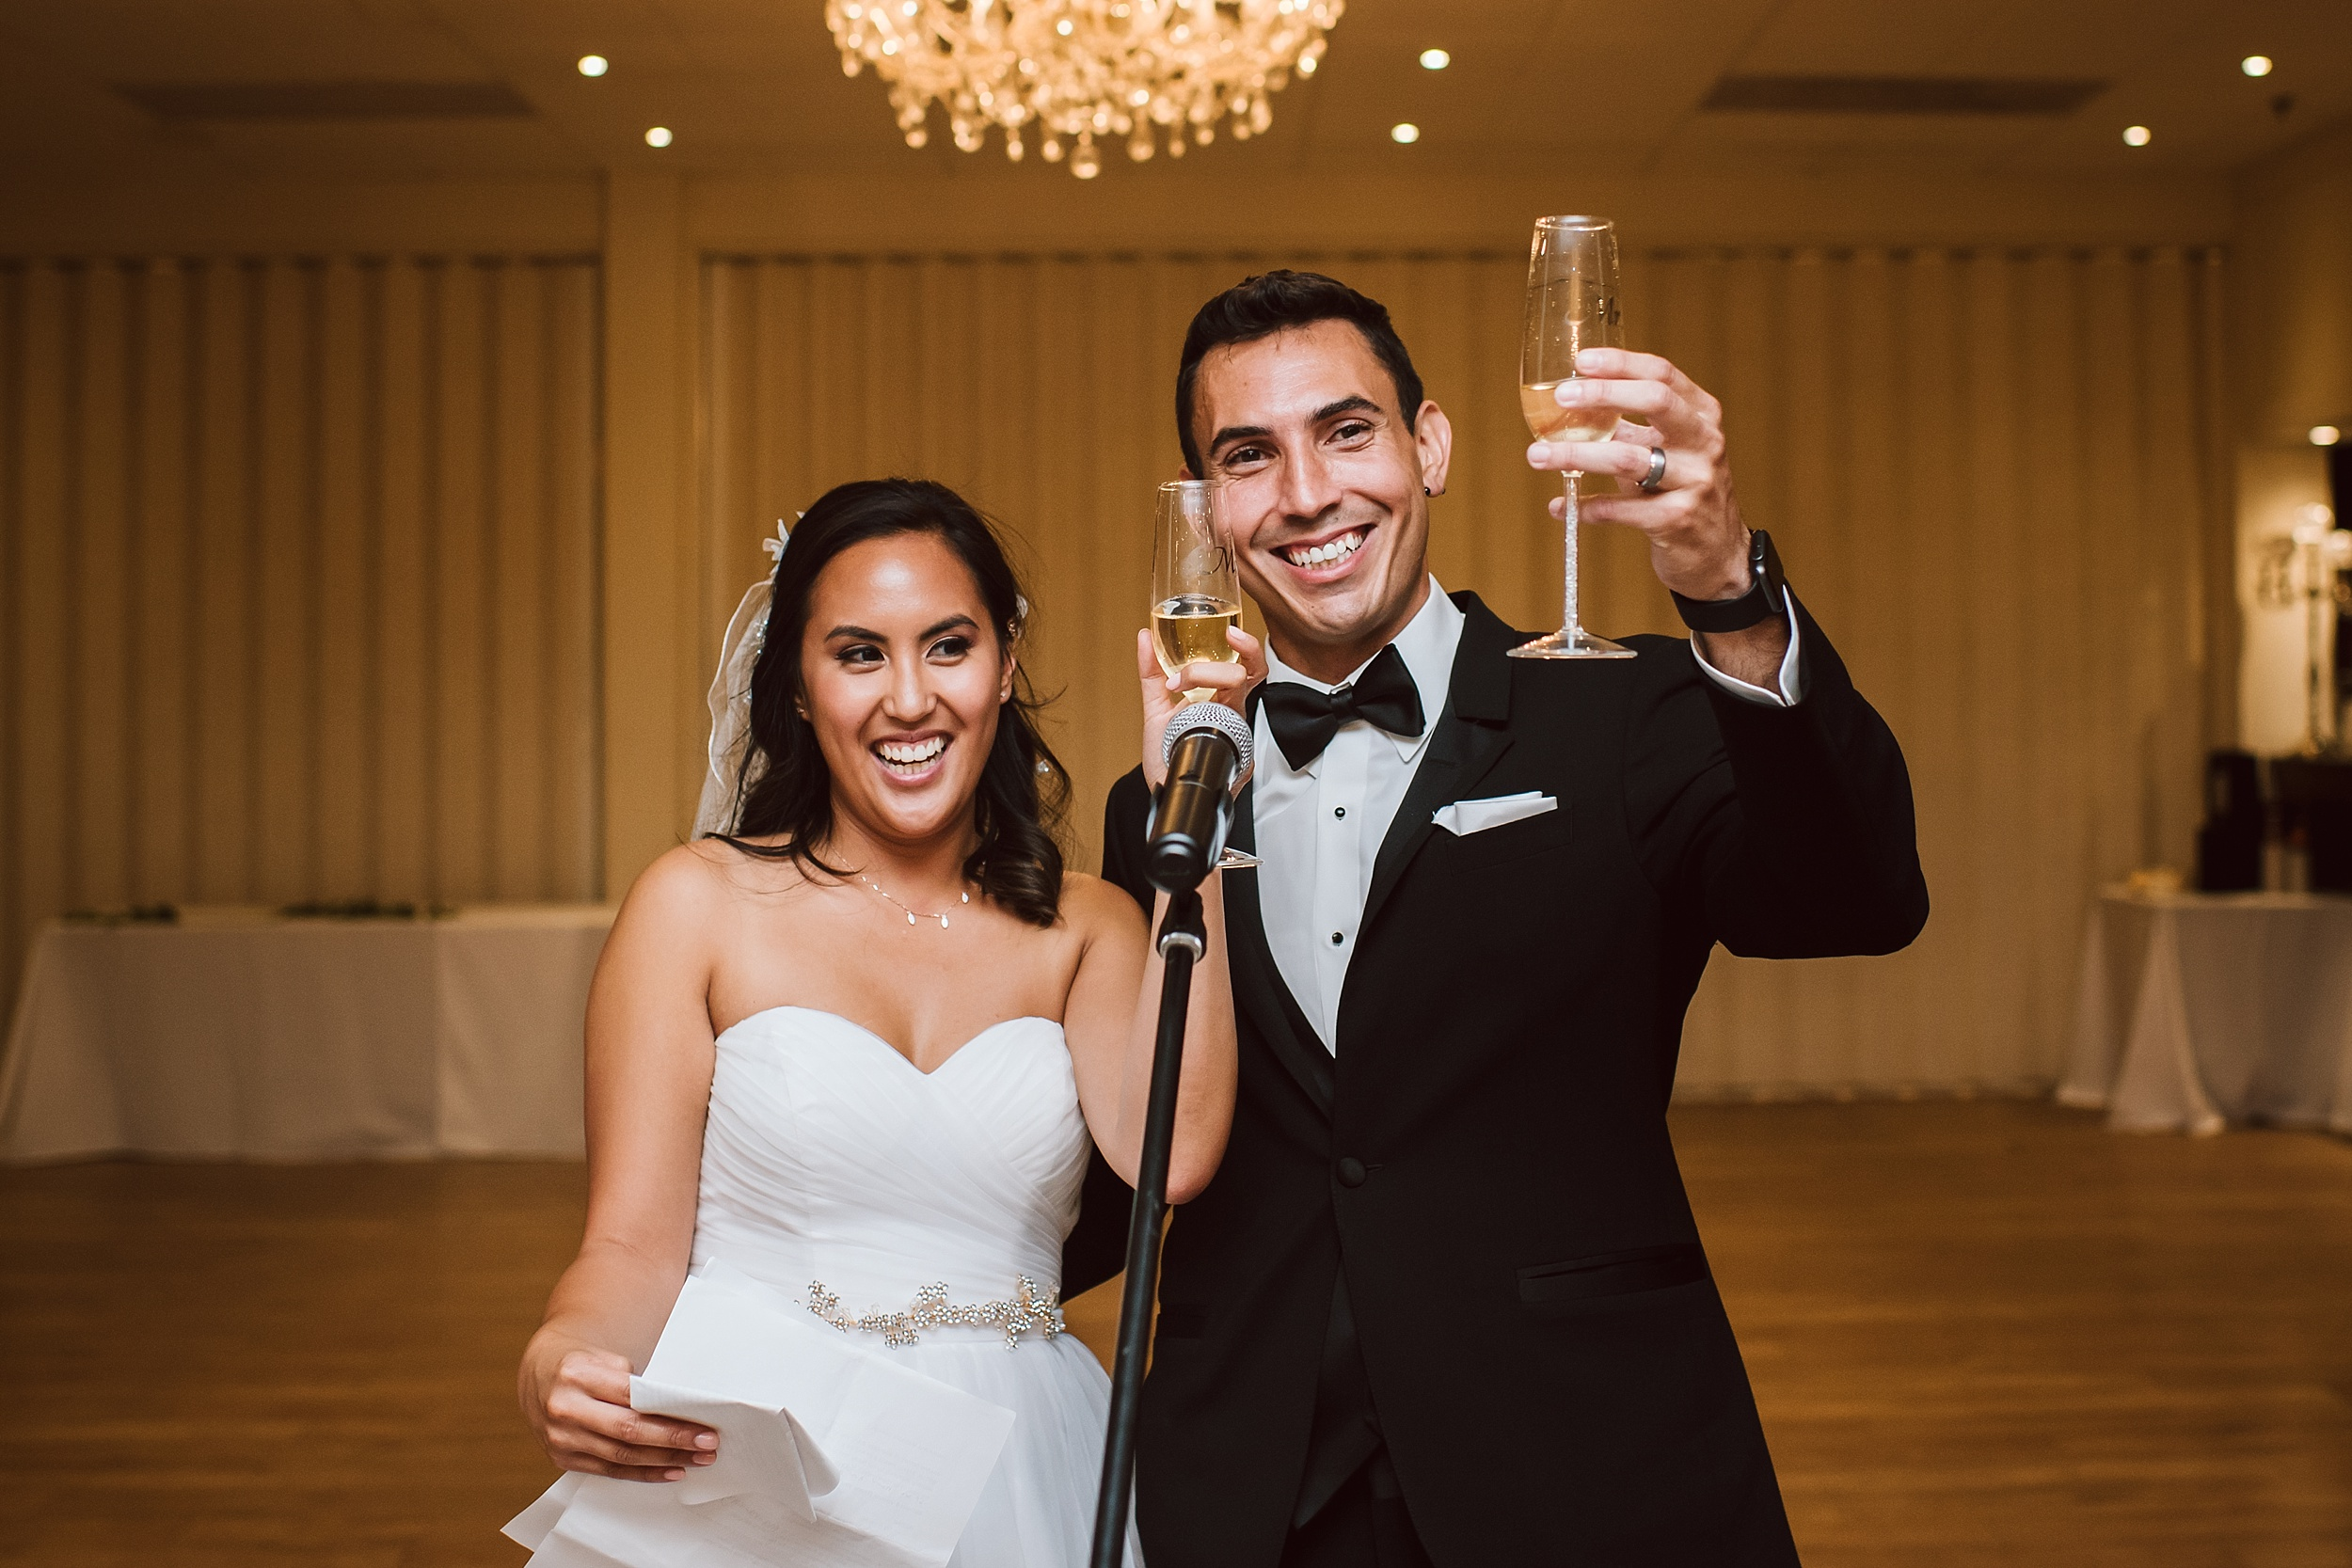 Toronto_Wedding_Photographer_Catholic_Portuguese_0100.jpg